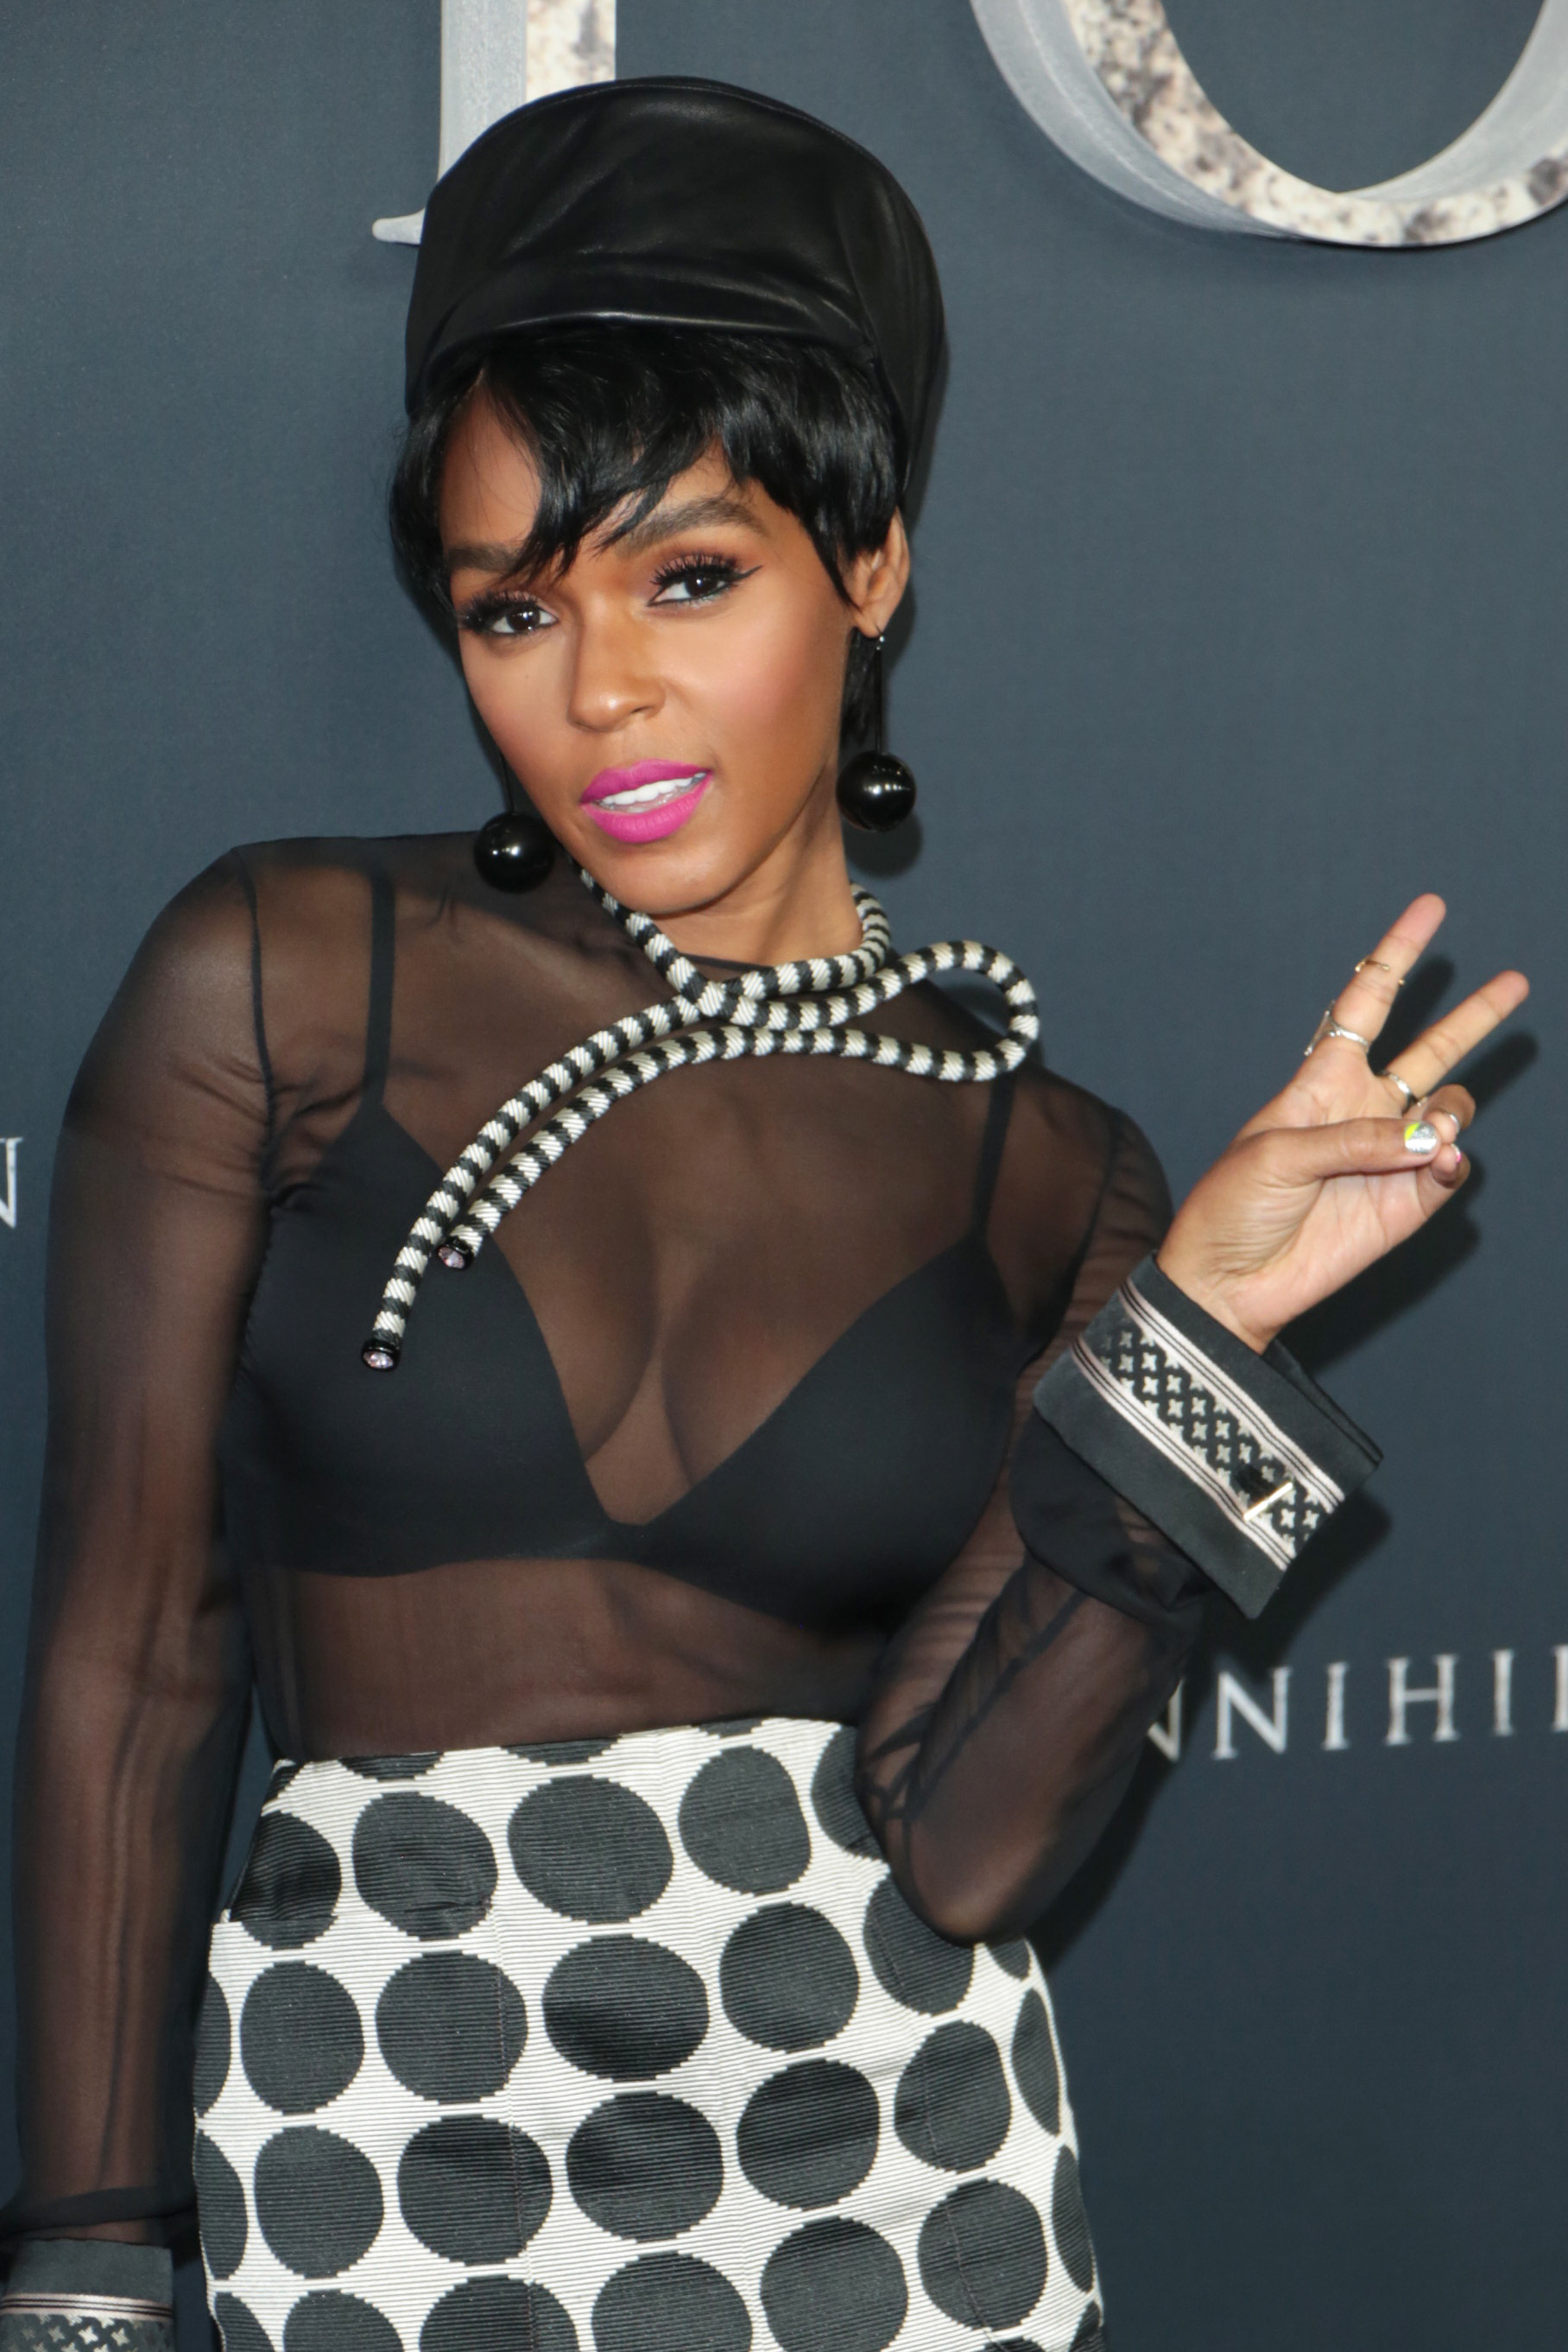 Janelle Monáe To Give Racially-Charged Disney Song A Makeover